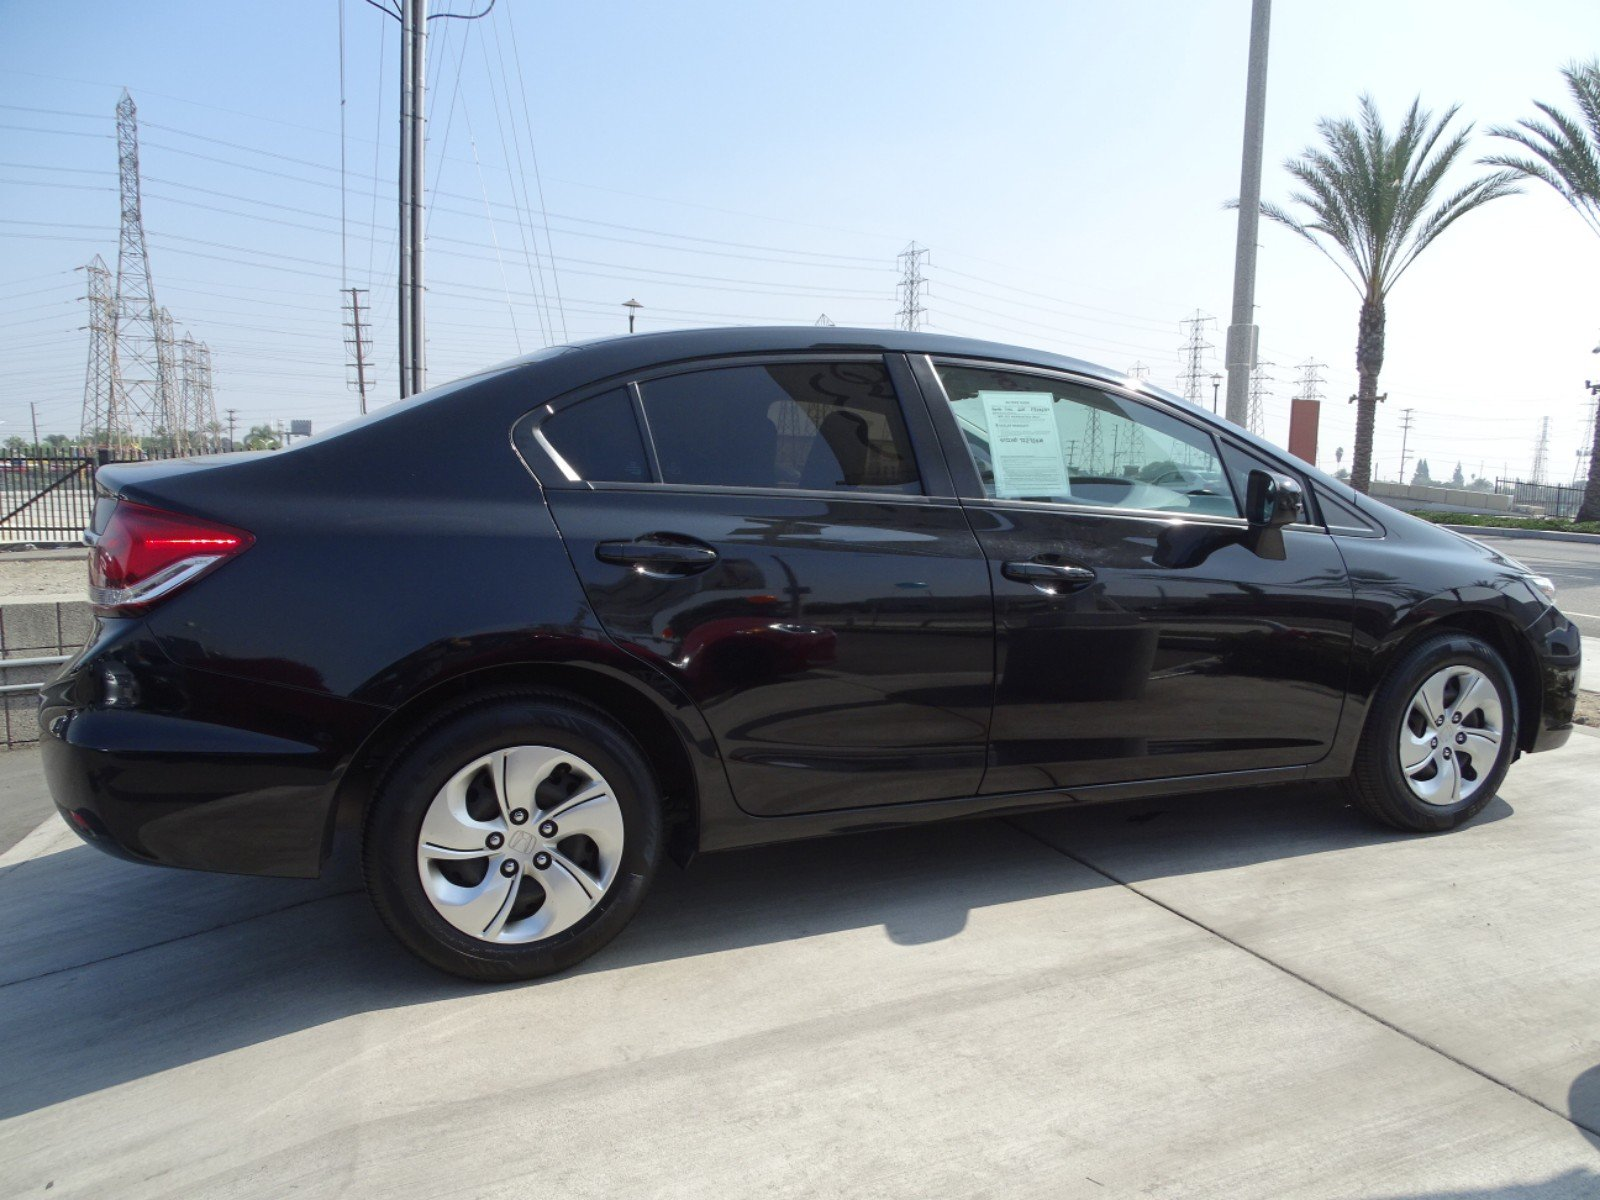 Pre Owned 2015 Honda Civic Sedan LX 4dr Car in Downey A